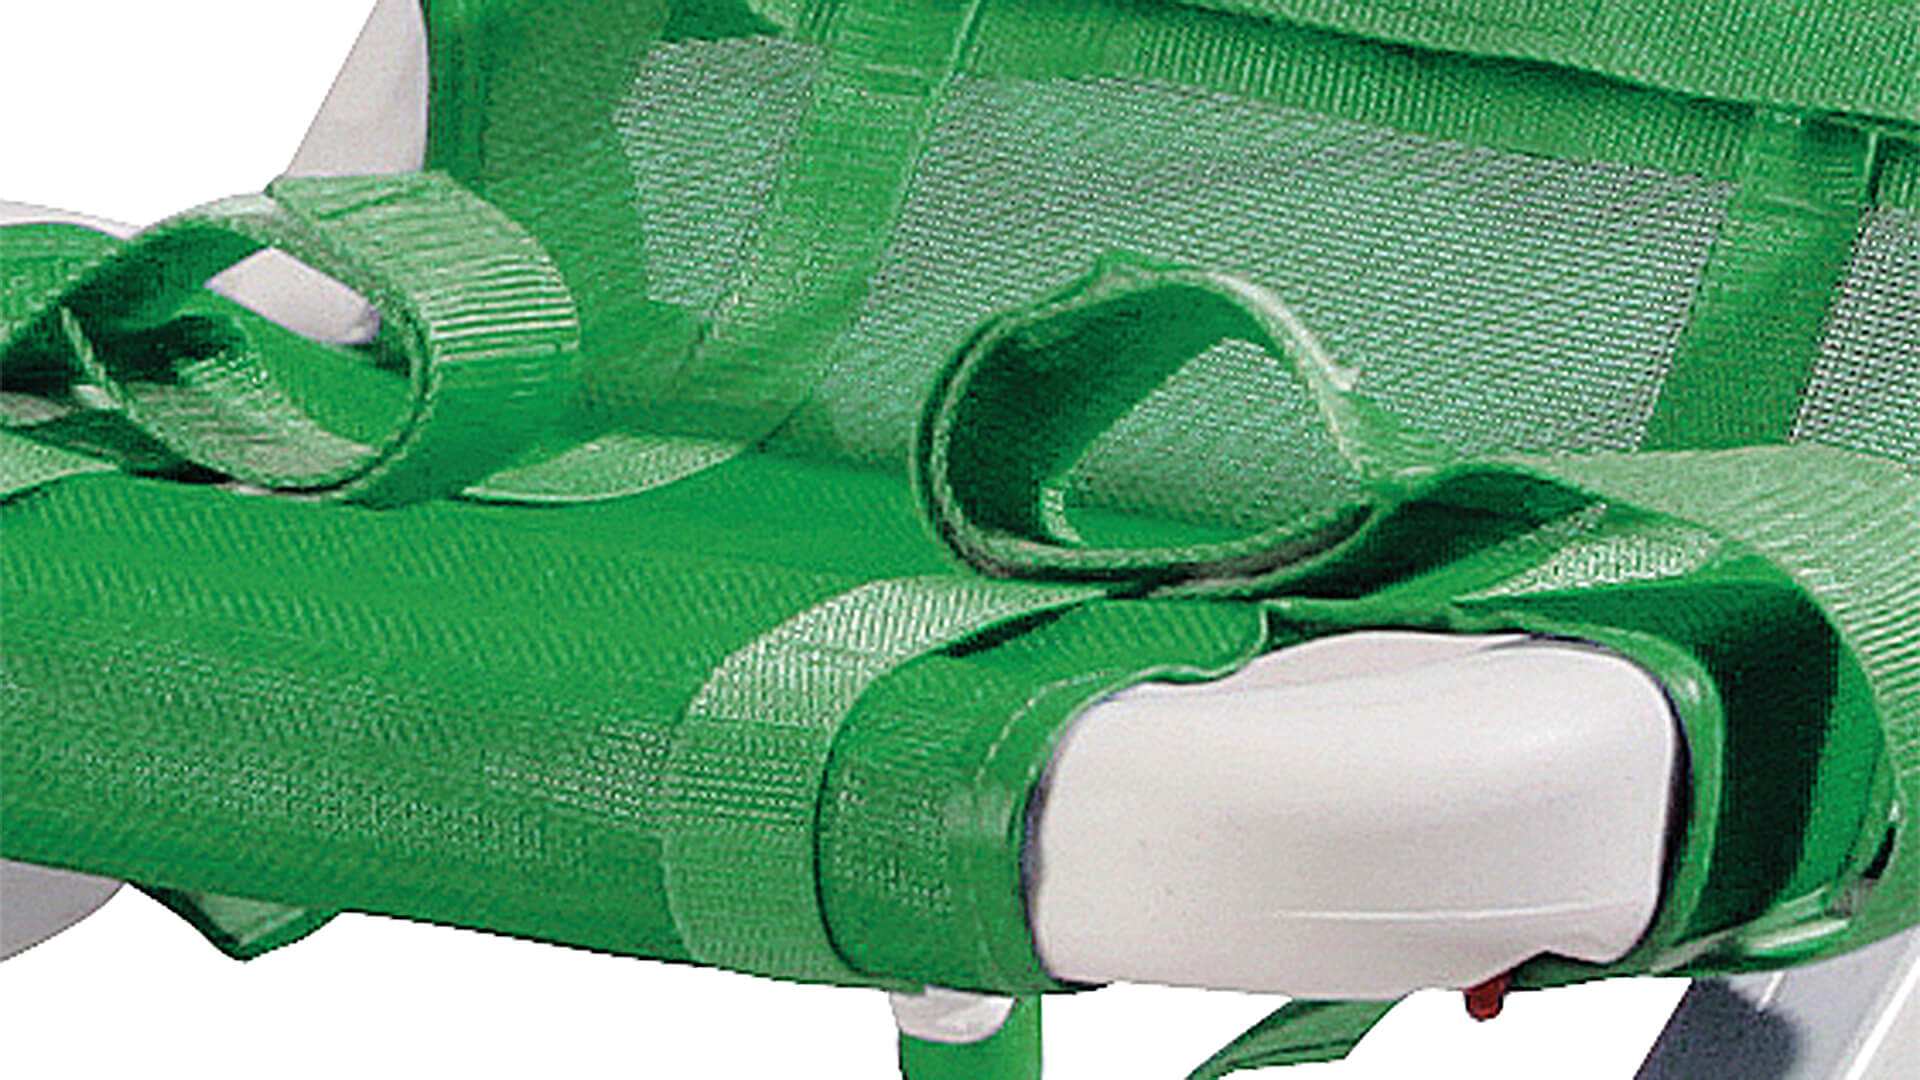 otter bath chair bedroom dressing inspired by drive leg straps